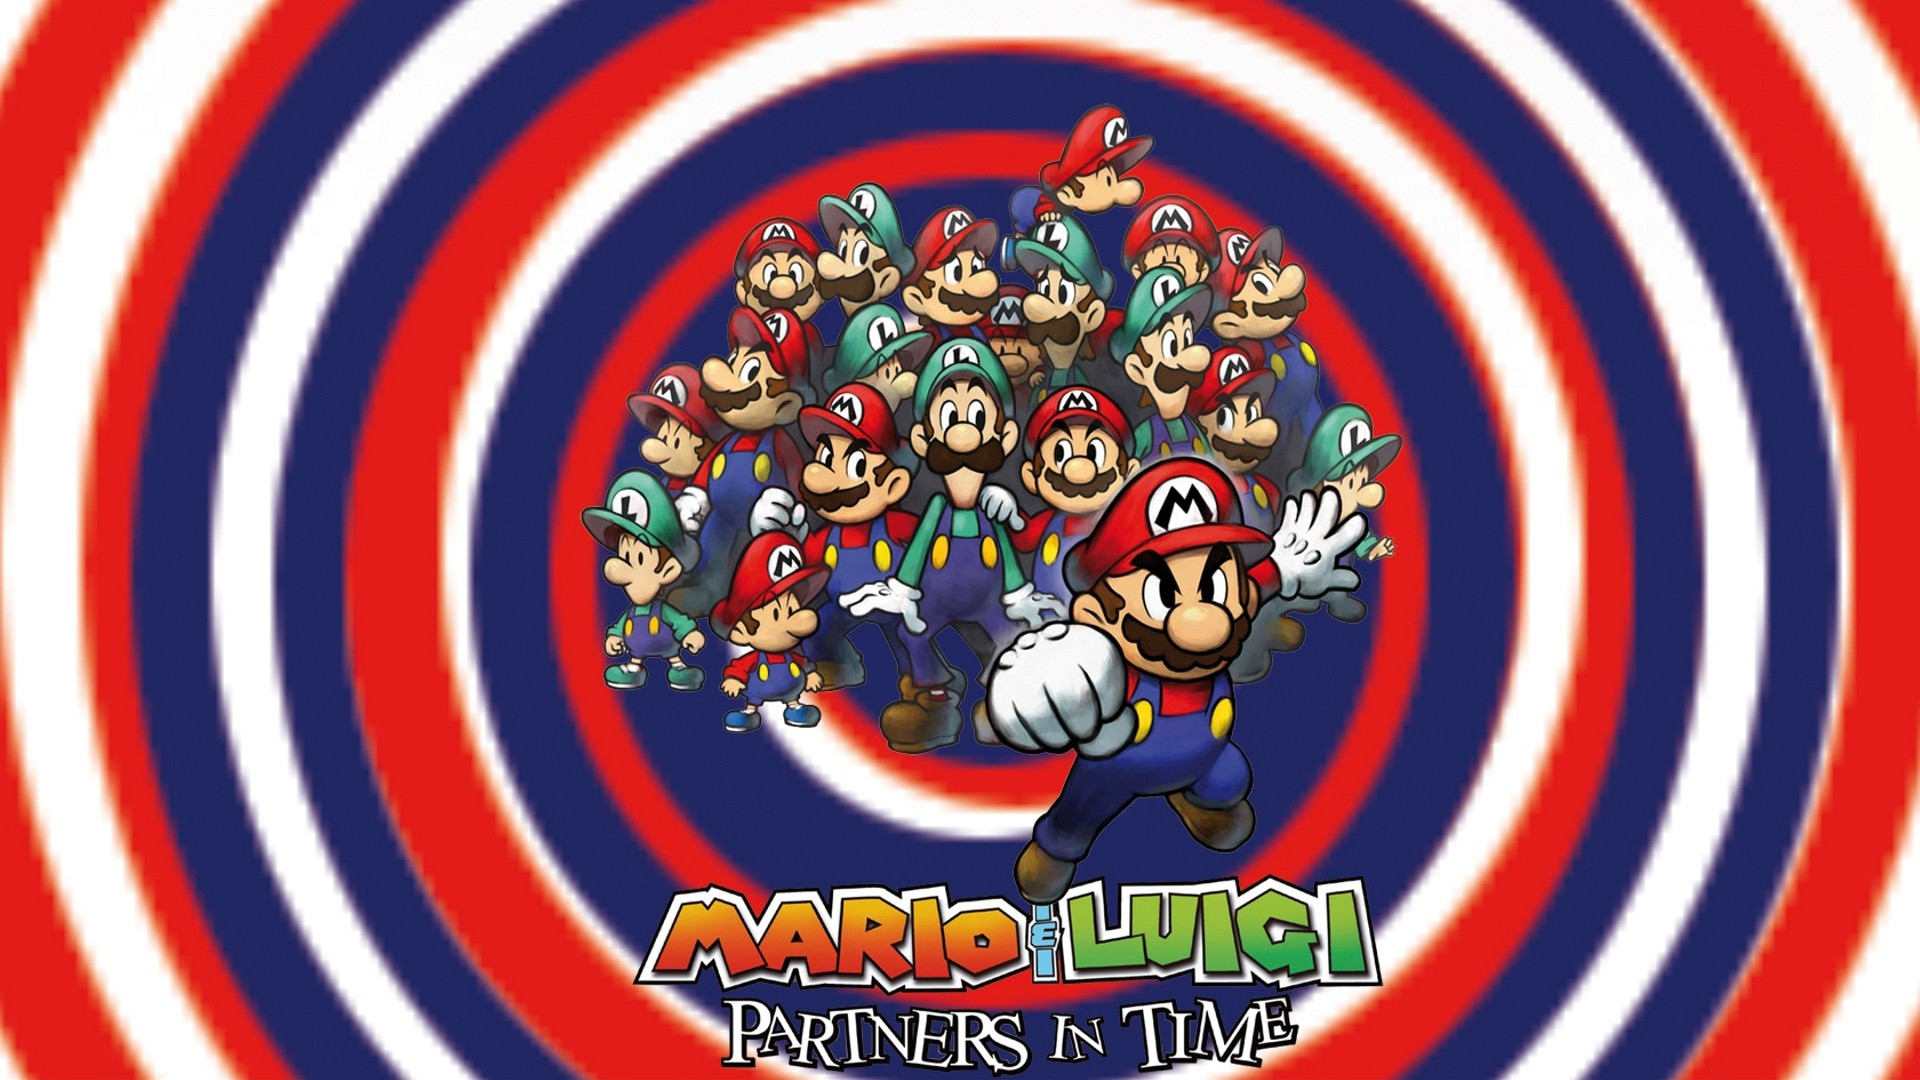 1920x1080 Video Game - Mario & Luigi: Partners In Time Wallpaper